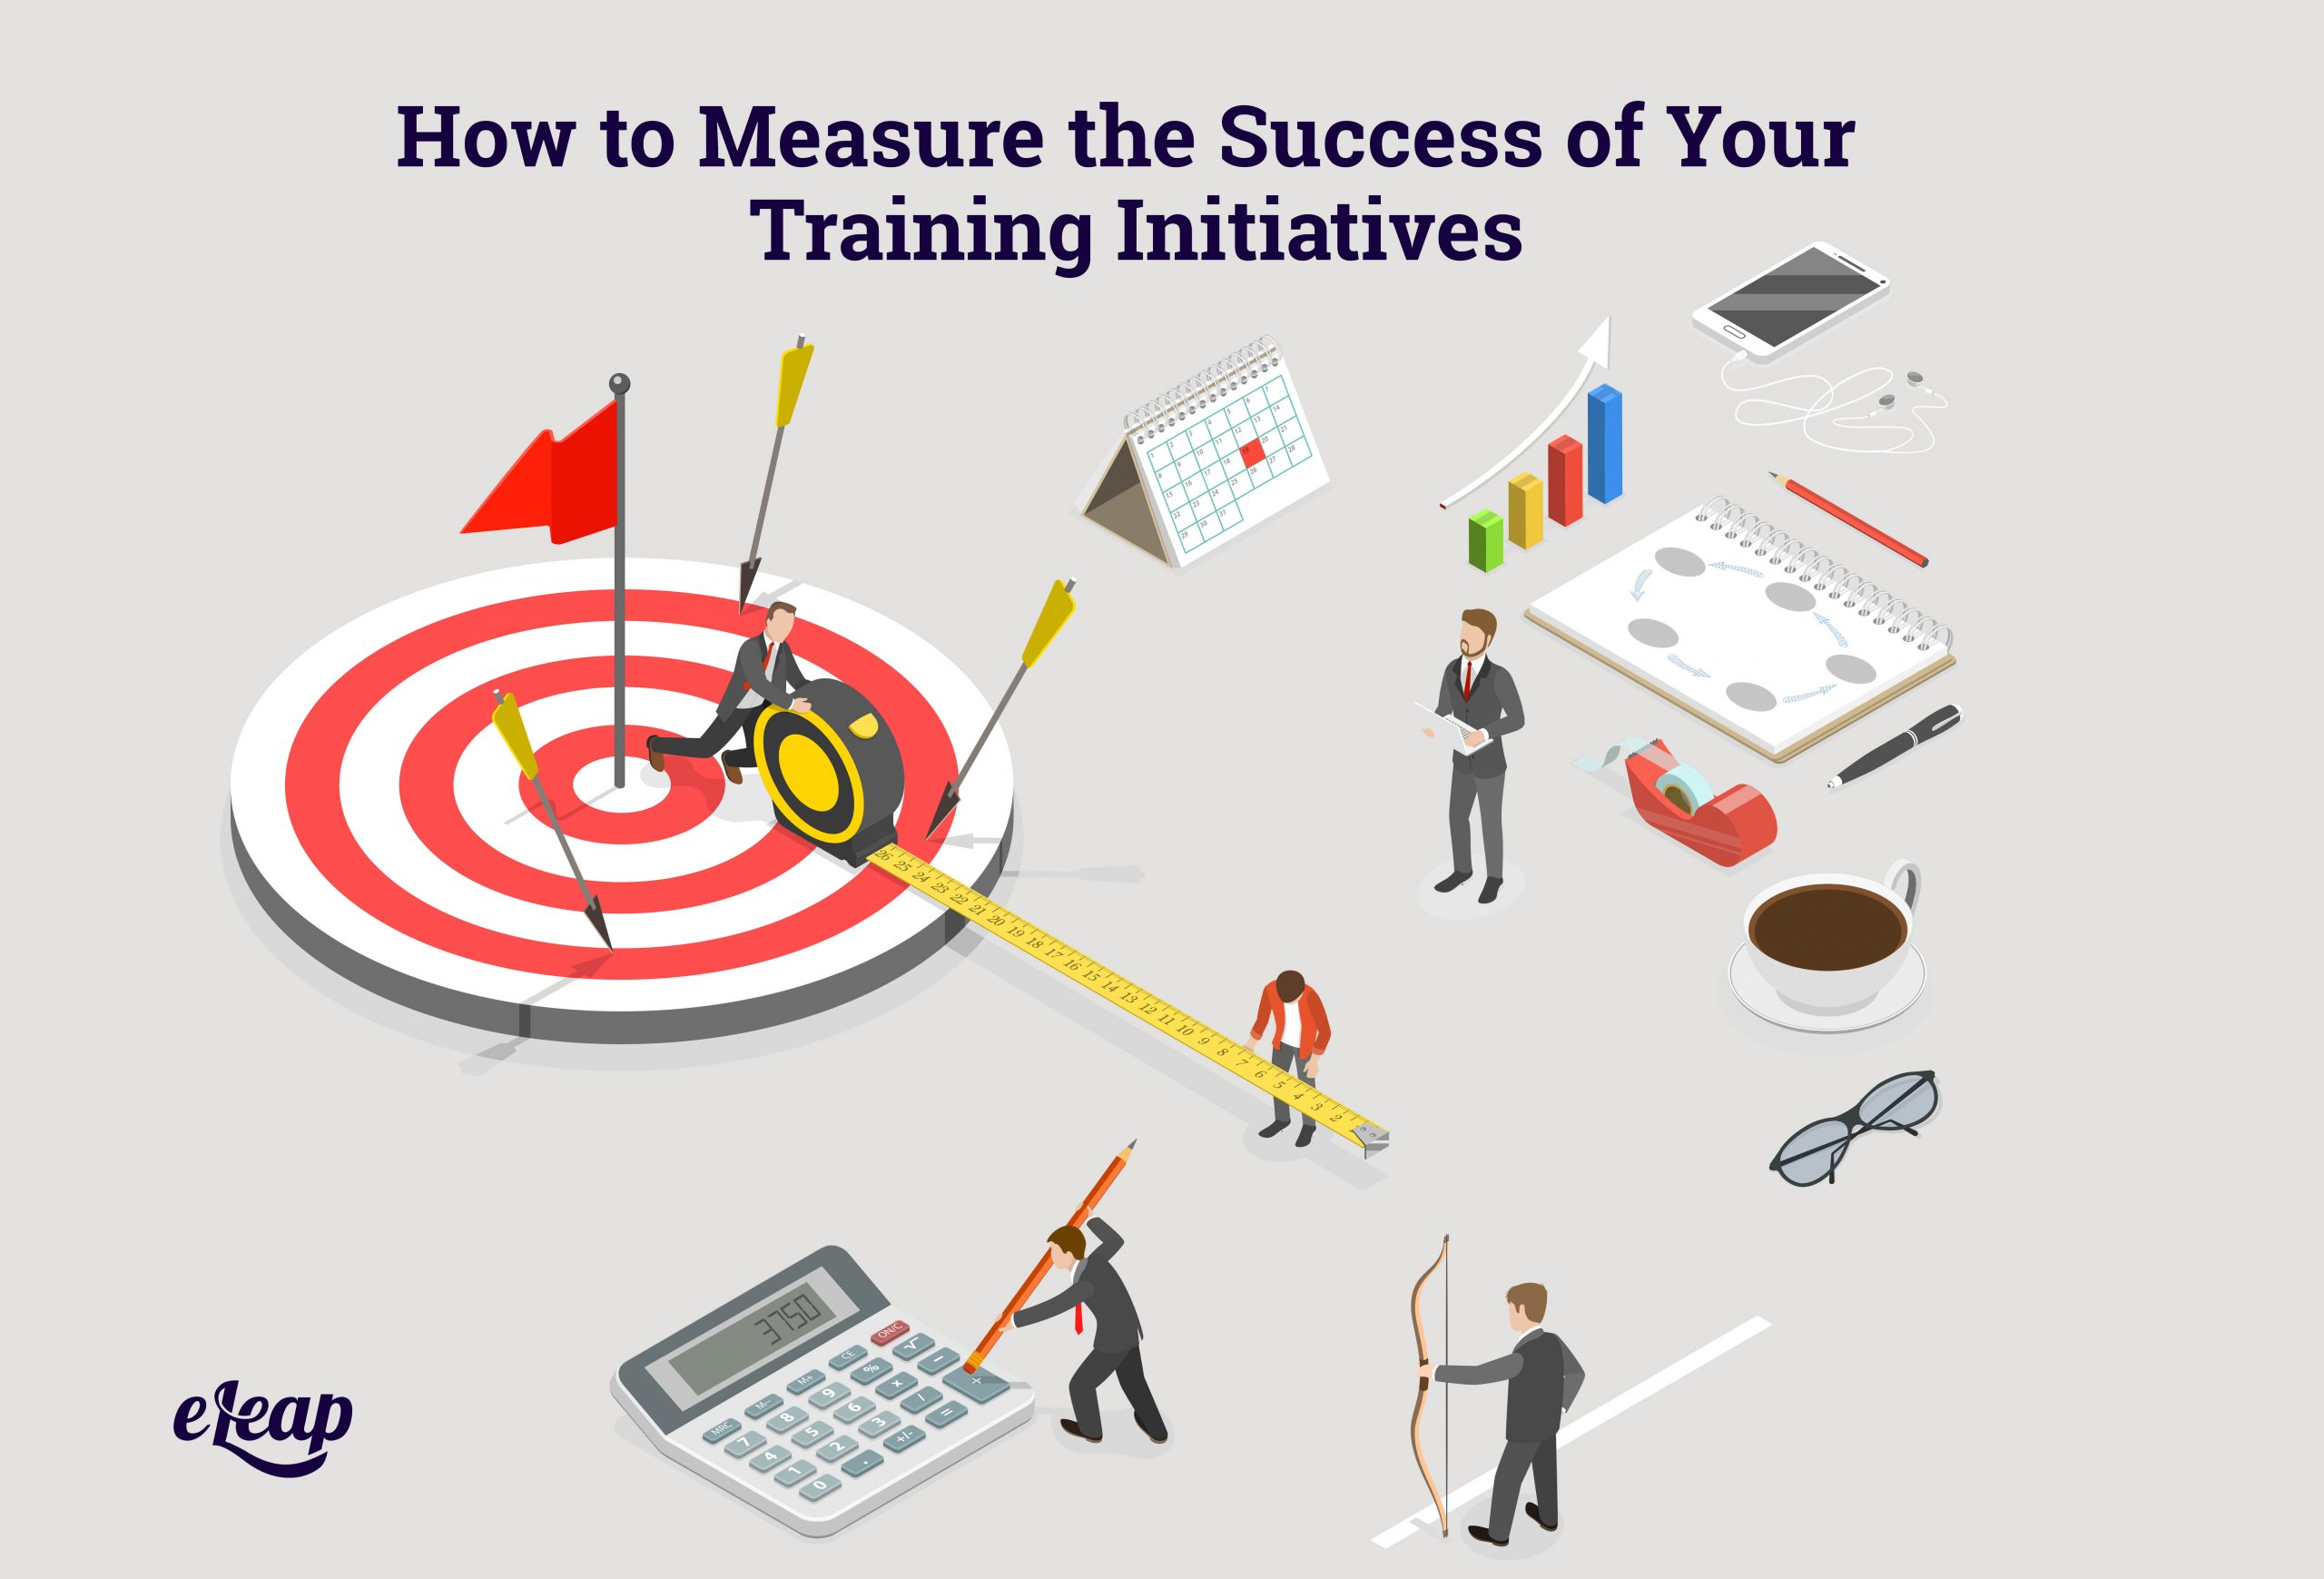 How to Measure the Success of Your Training Initiatives